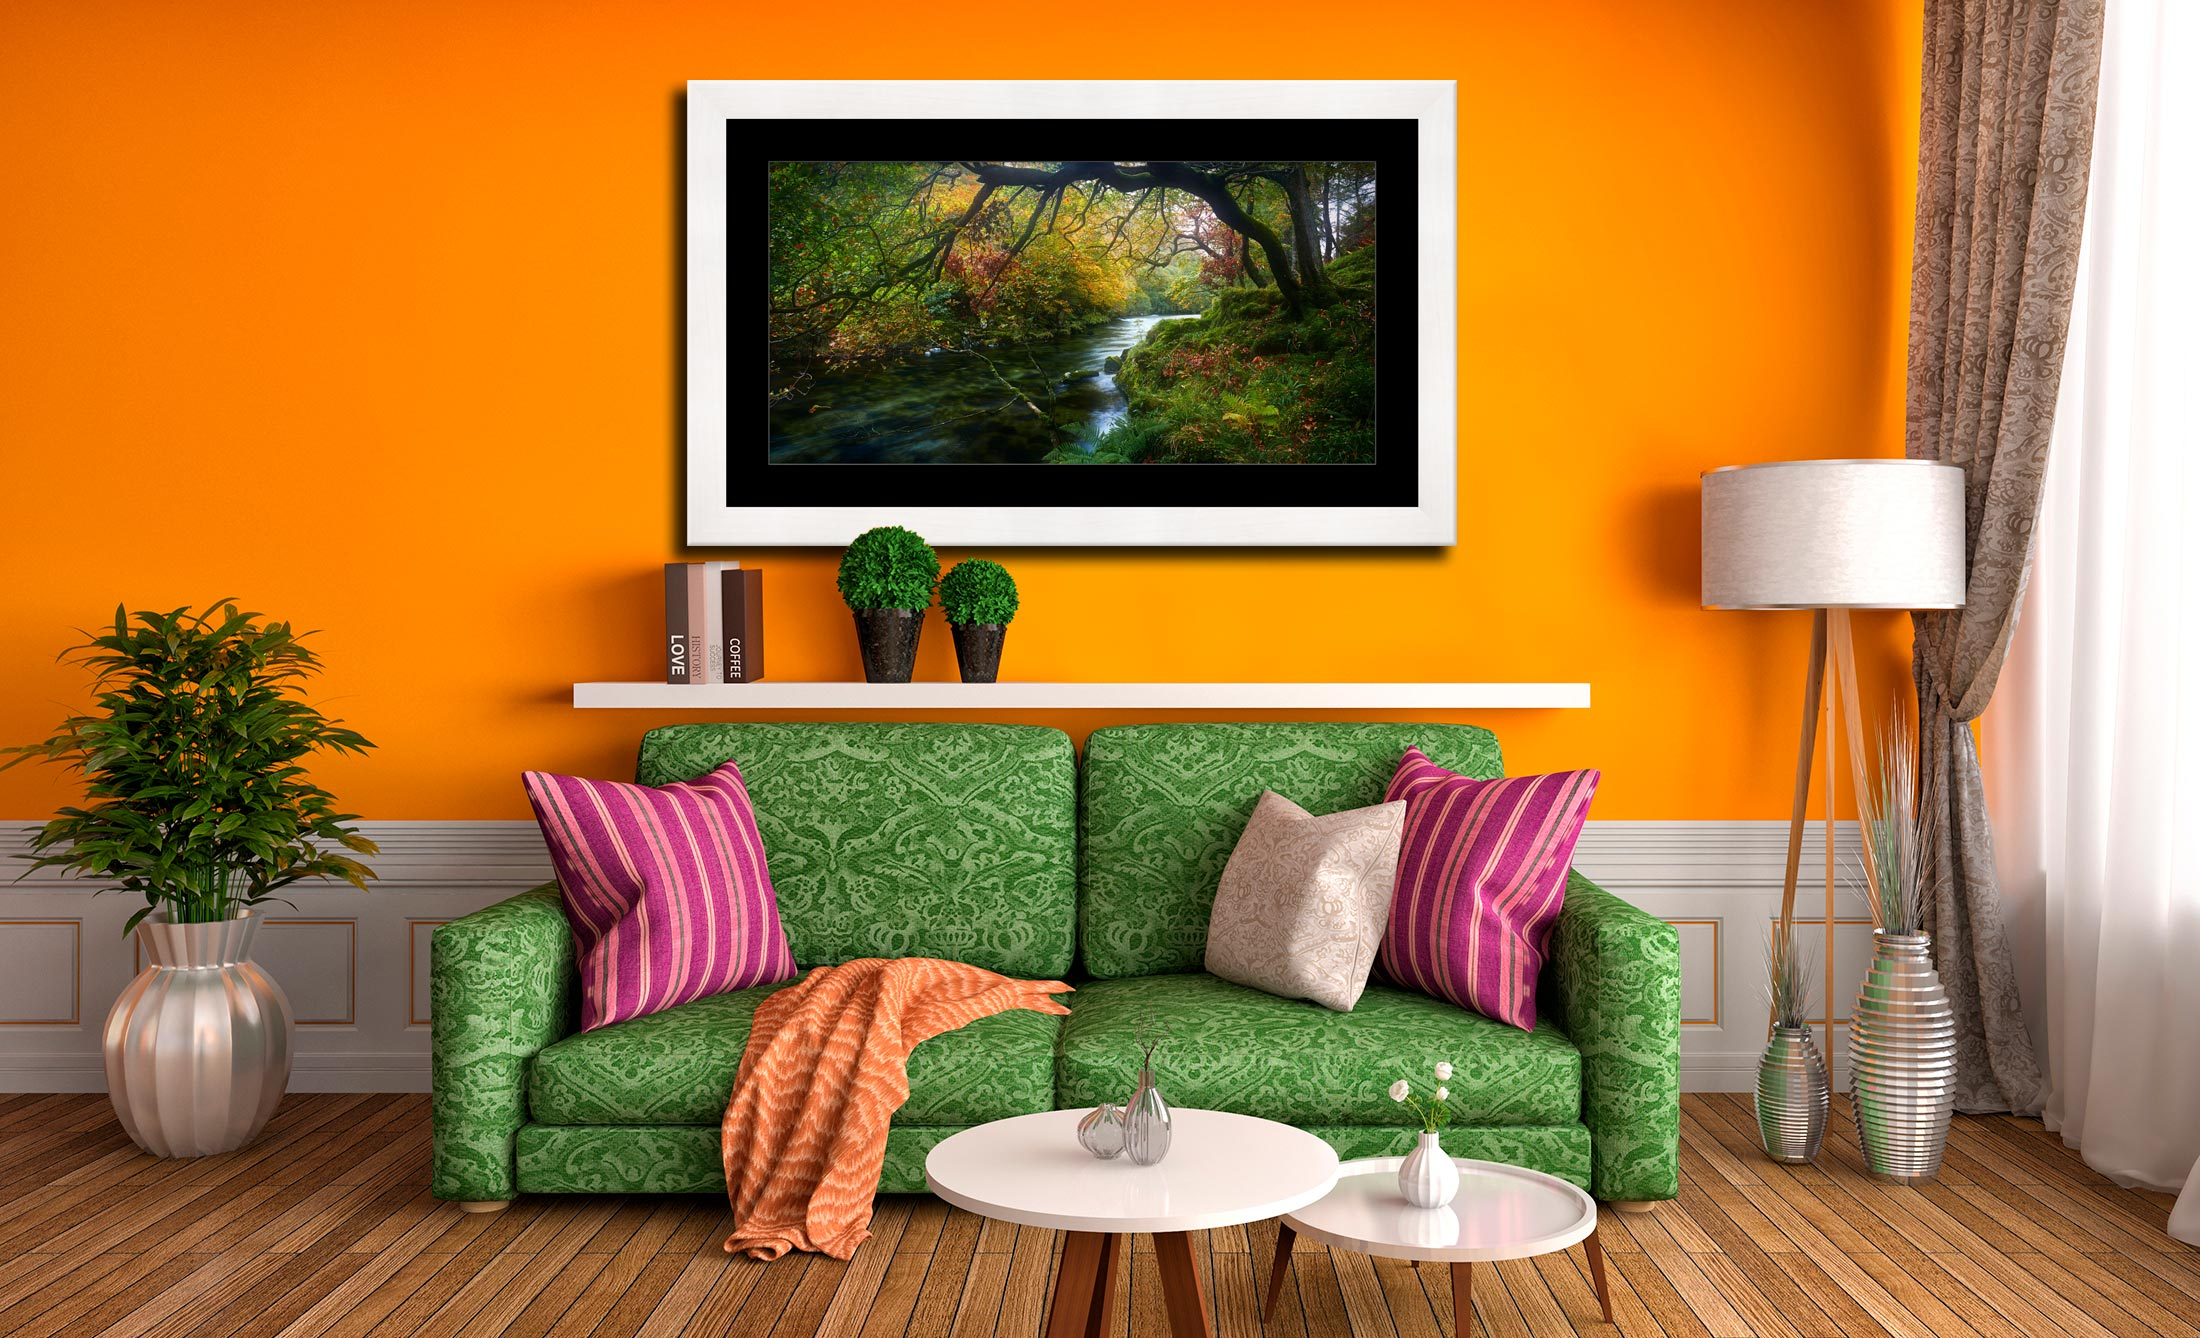 River Derwent in Autumn - Framed Print with Mount on Wall